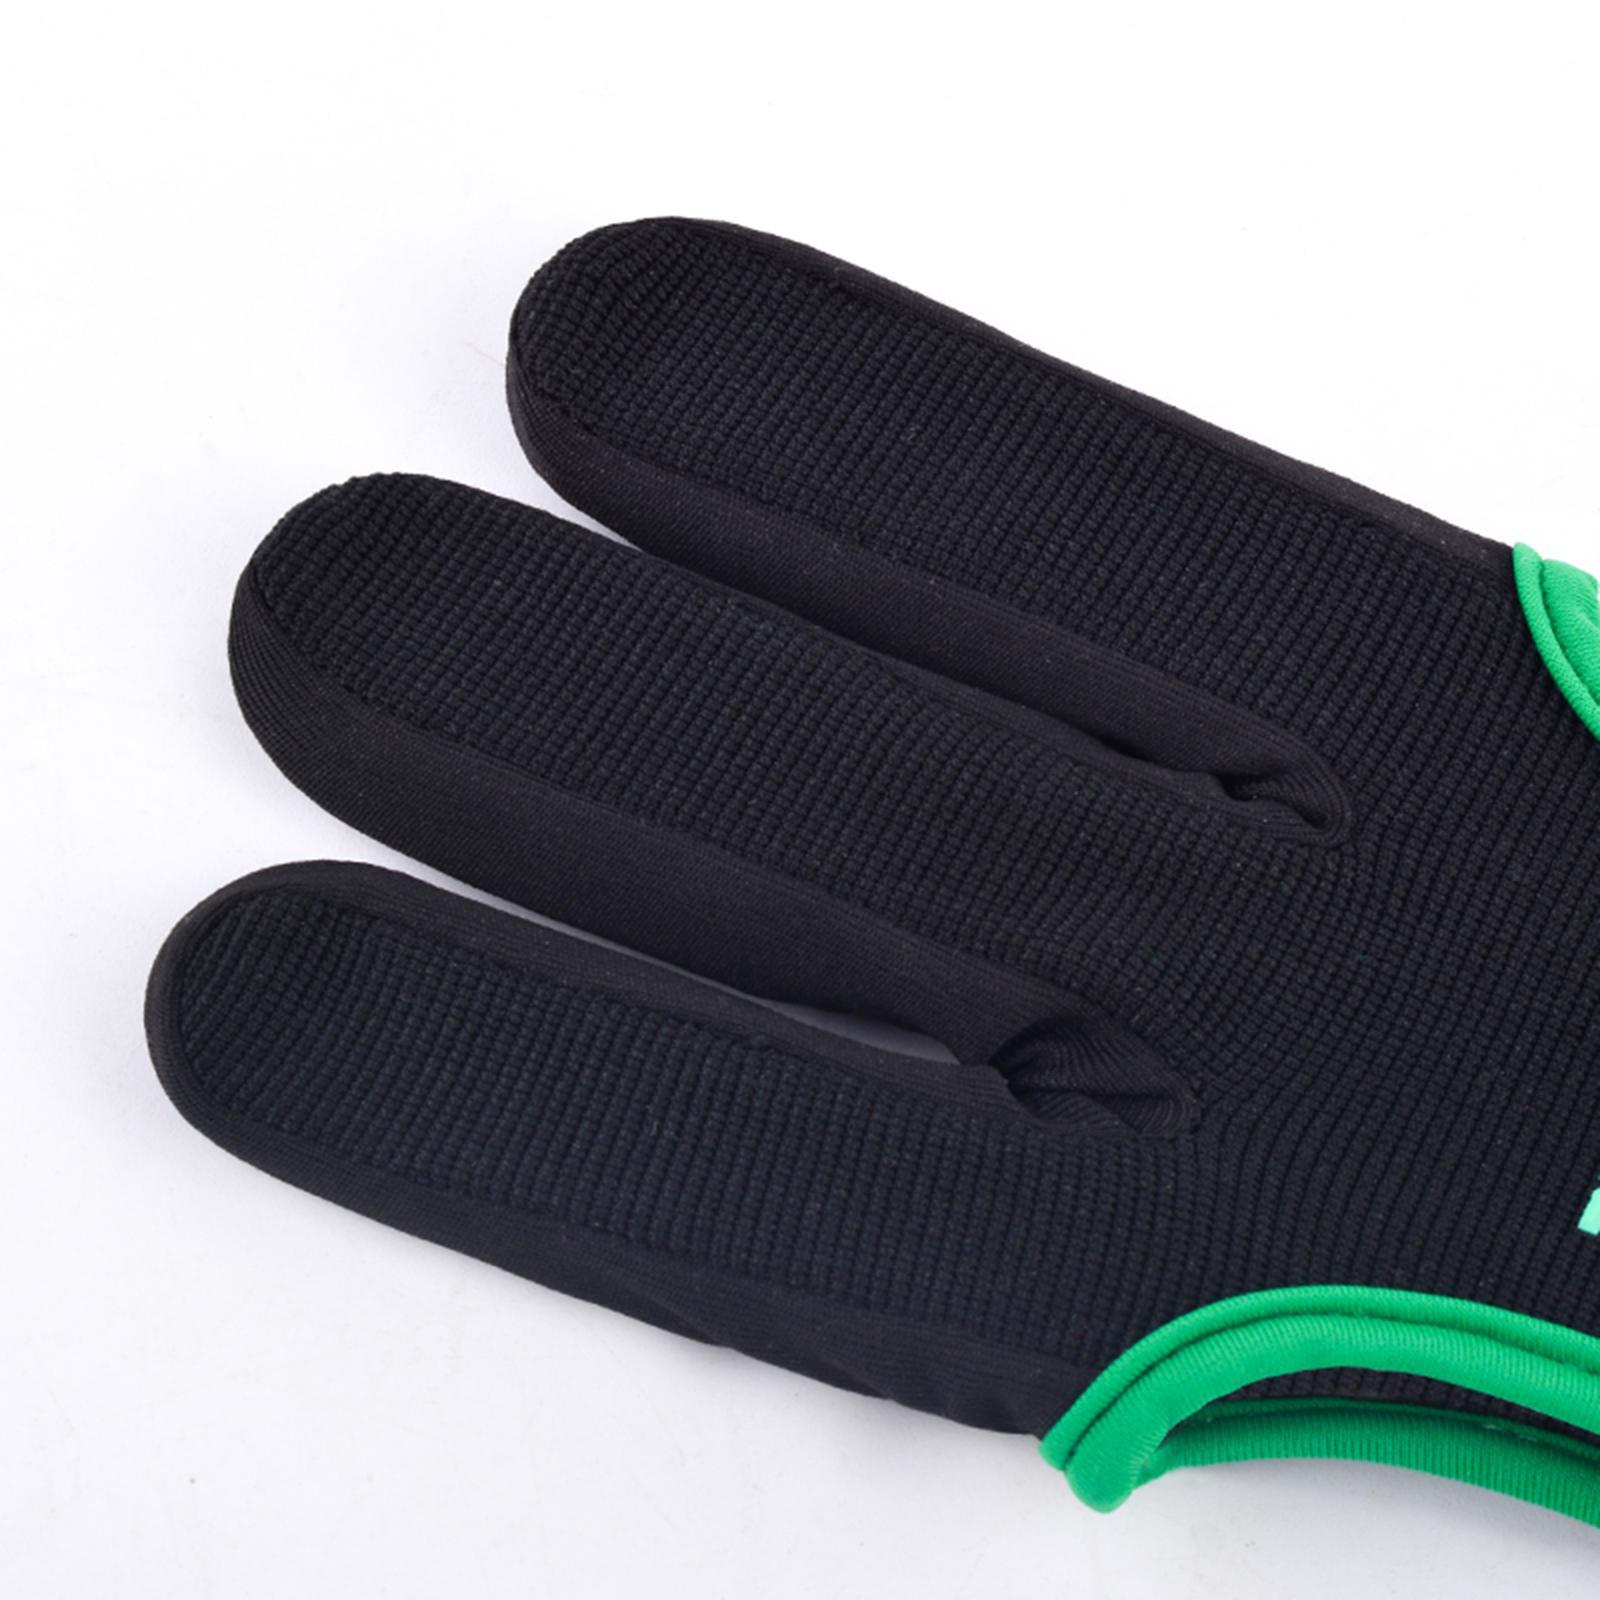 thumbnail 69 - Archery Glove for Recurve & Compound Bow 3 Finger Guard for Women Men Youth